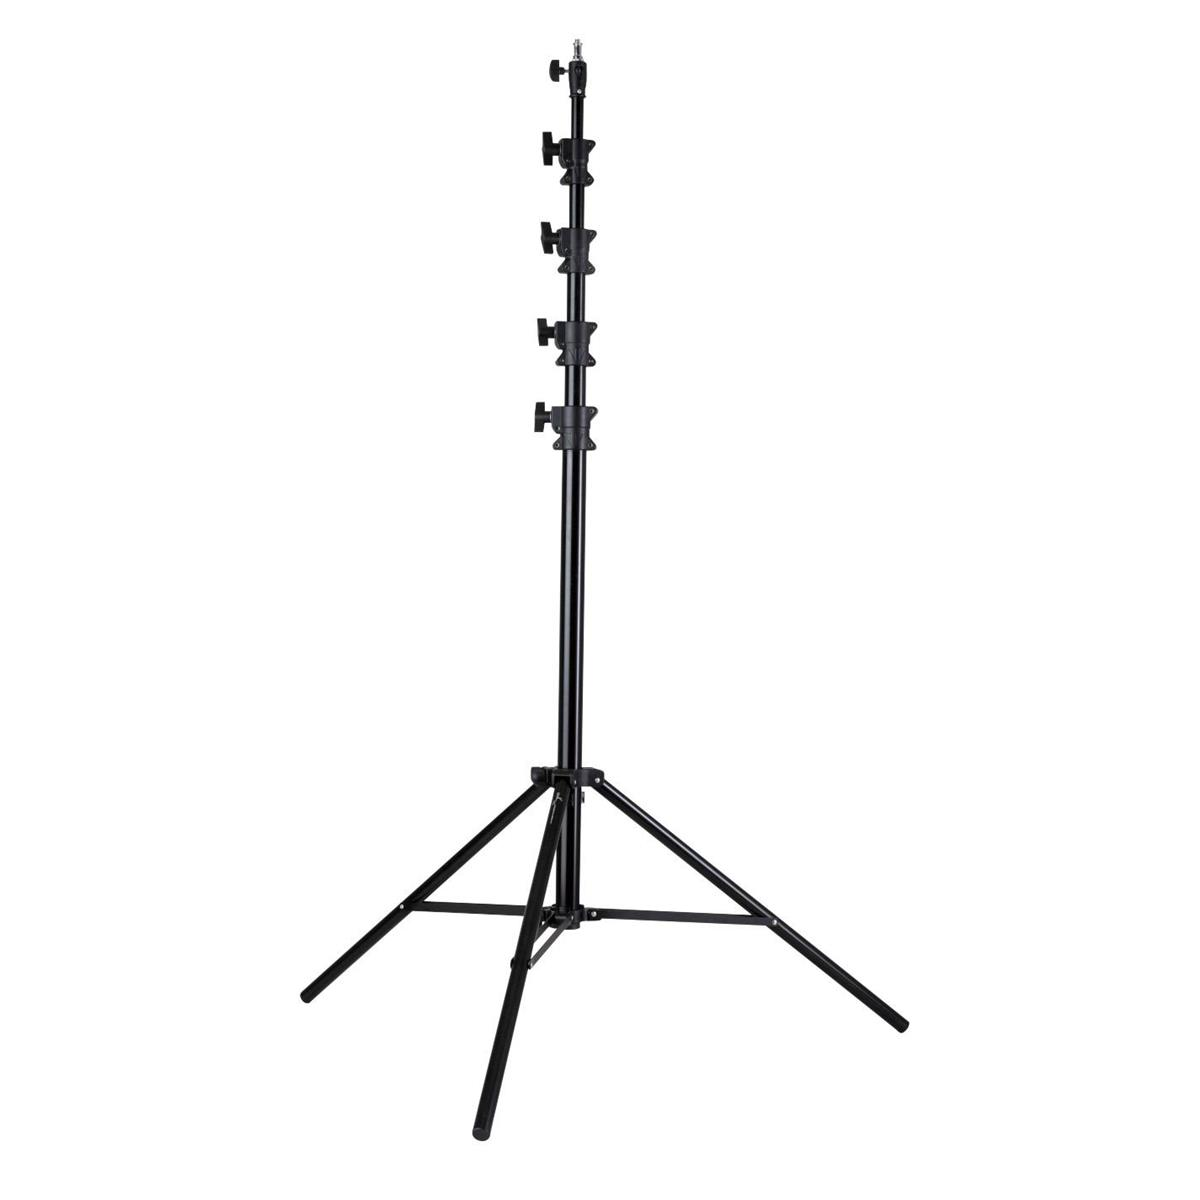 MEKING MZ-4800FP Air Cushion Light Stand 4.8m